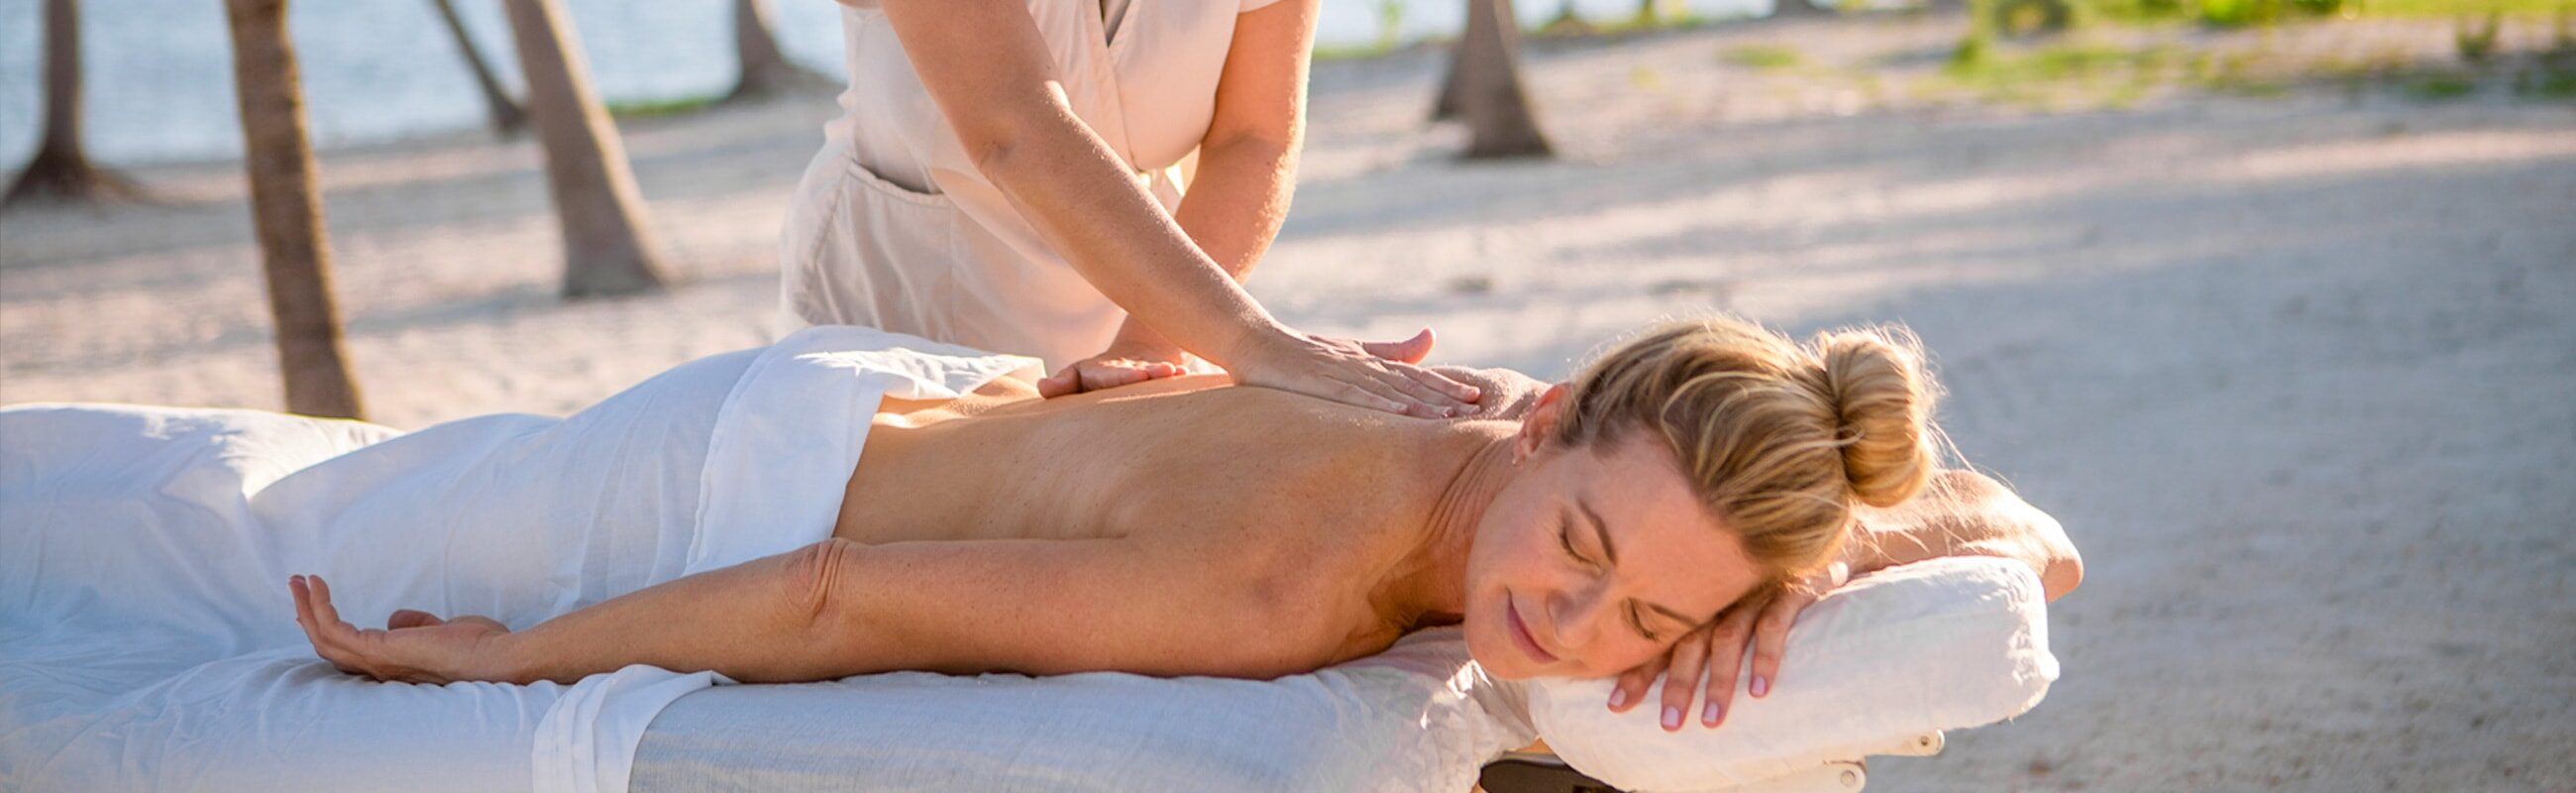 Start or end your dive vacation with a relaxing massage on the beach or in our Tropical Touch day spa